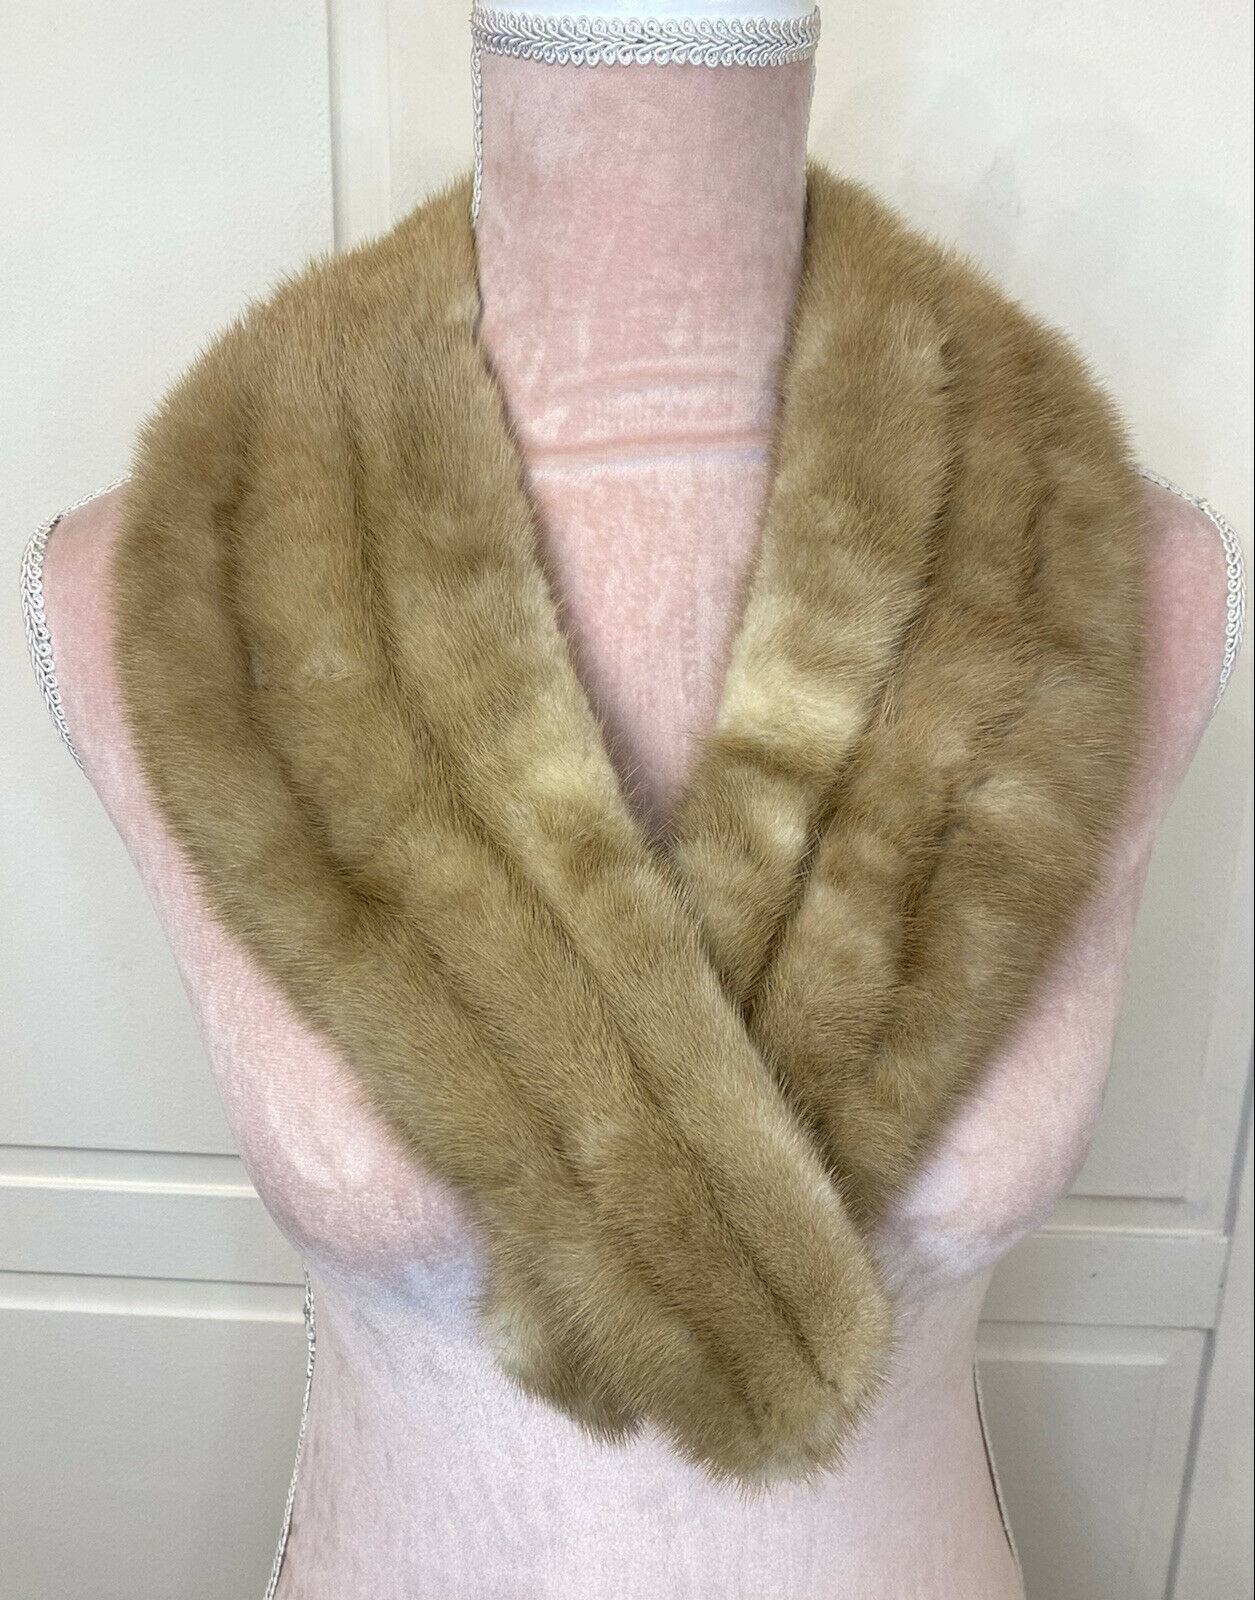 VTG 1950s Real Fur Wrap Style Stole Collar Golden Light Brown Mink Occasional